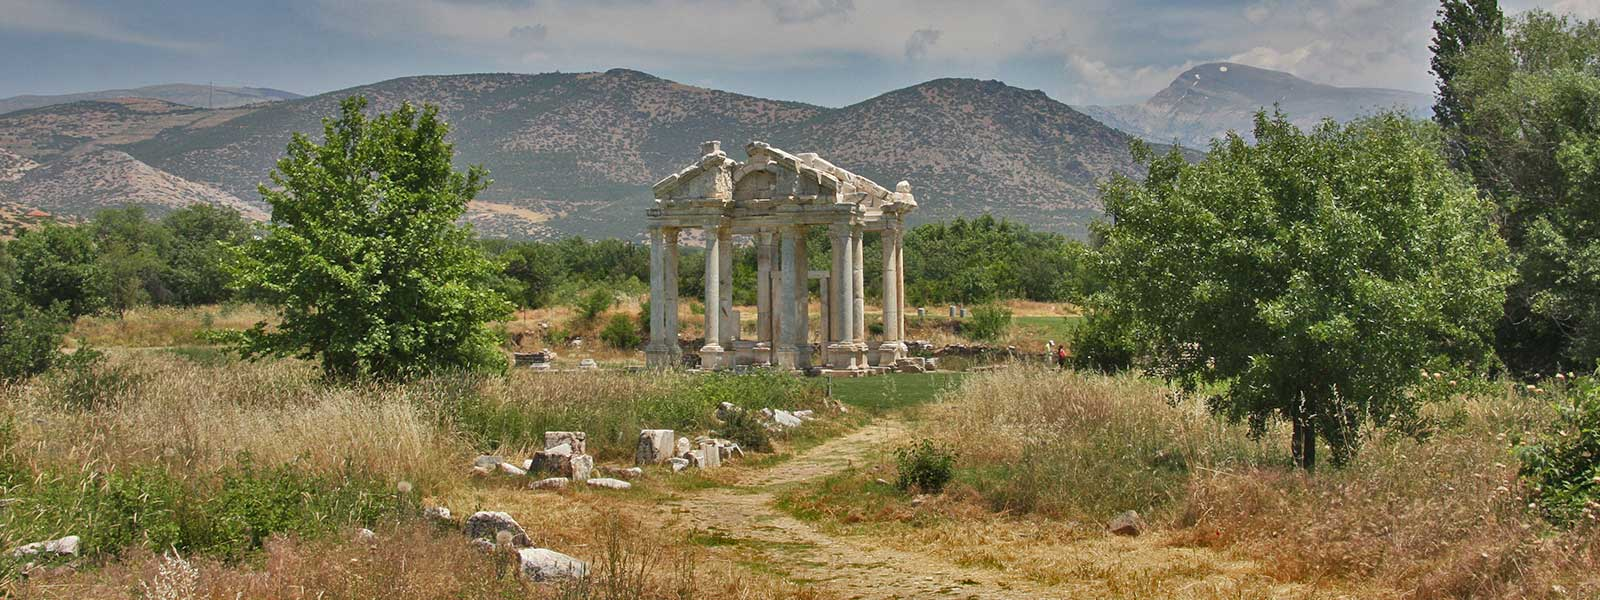 The Temple of Aphrodite, Aphrodisias, Turkey